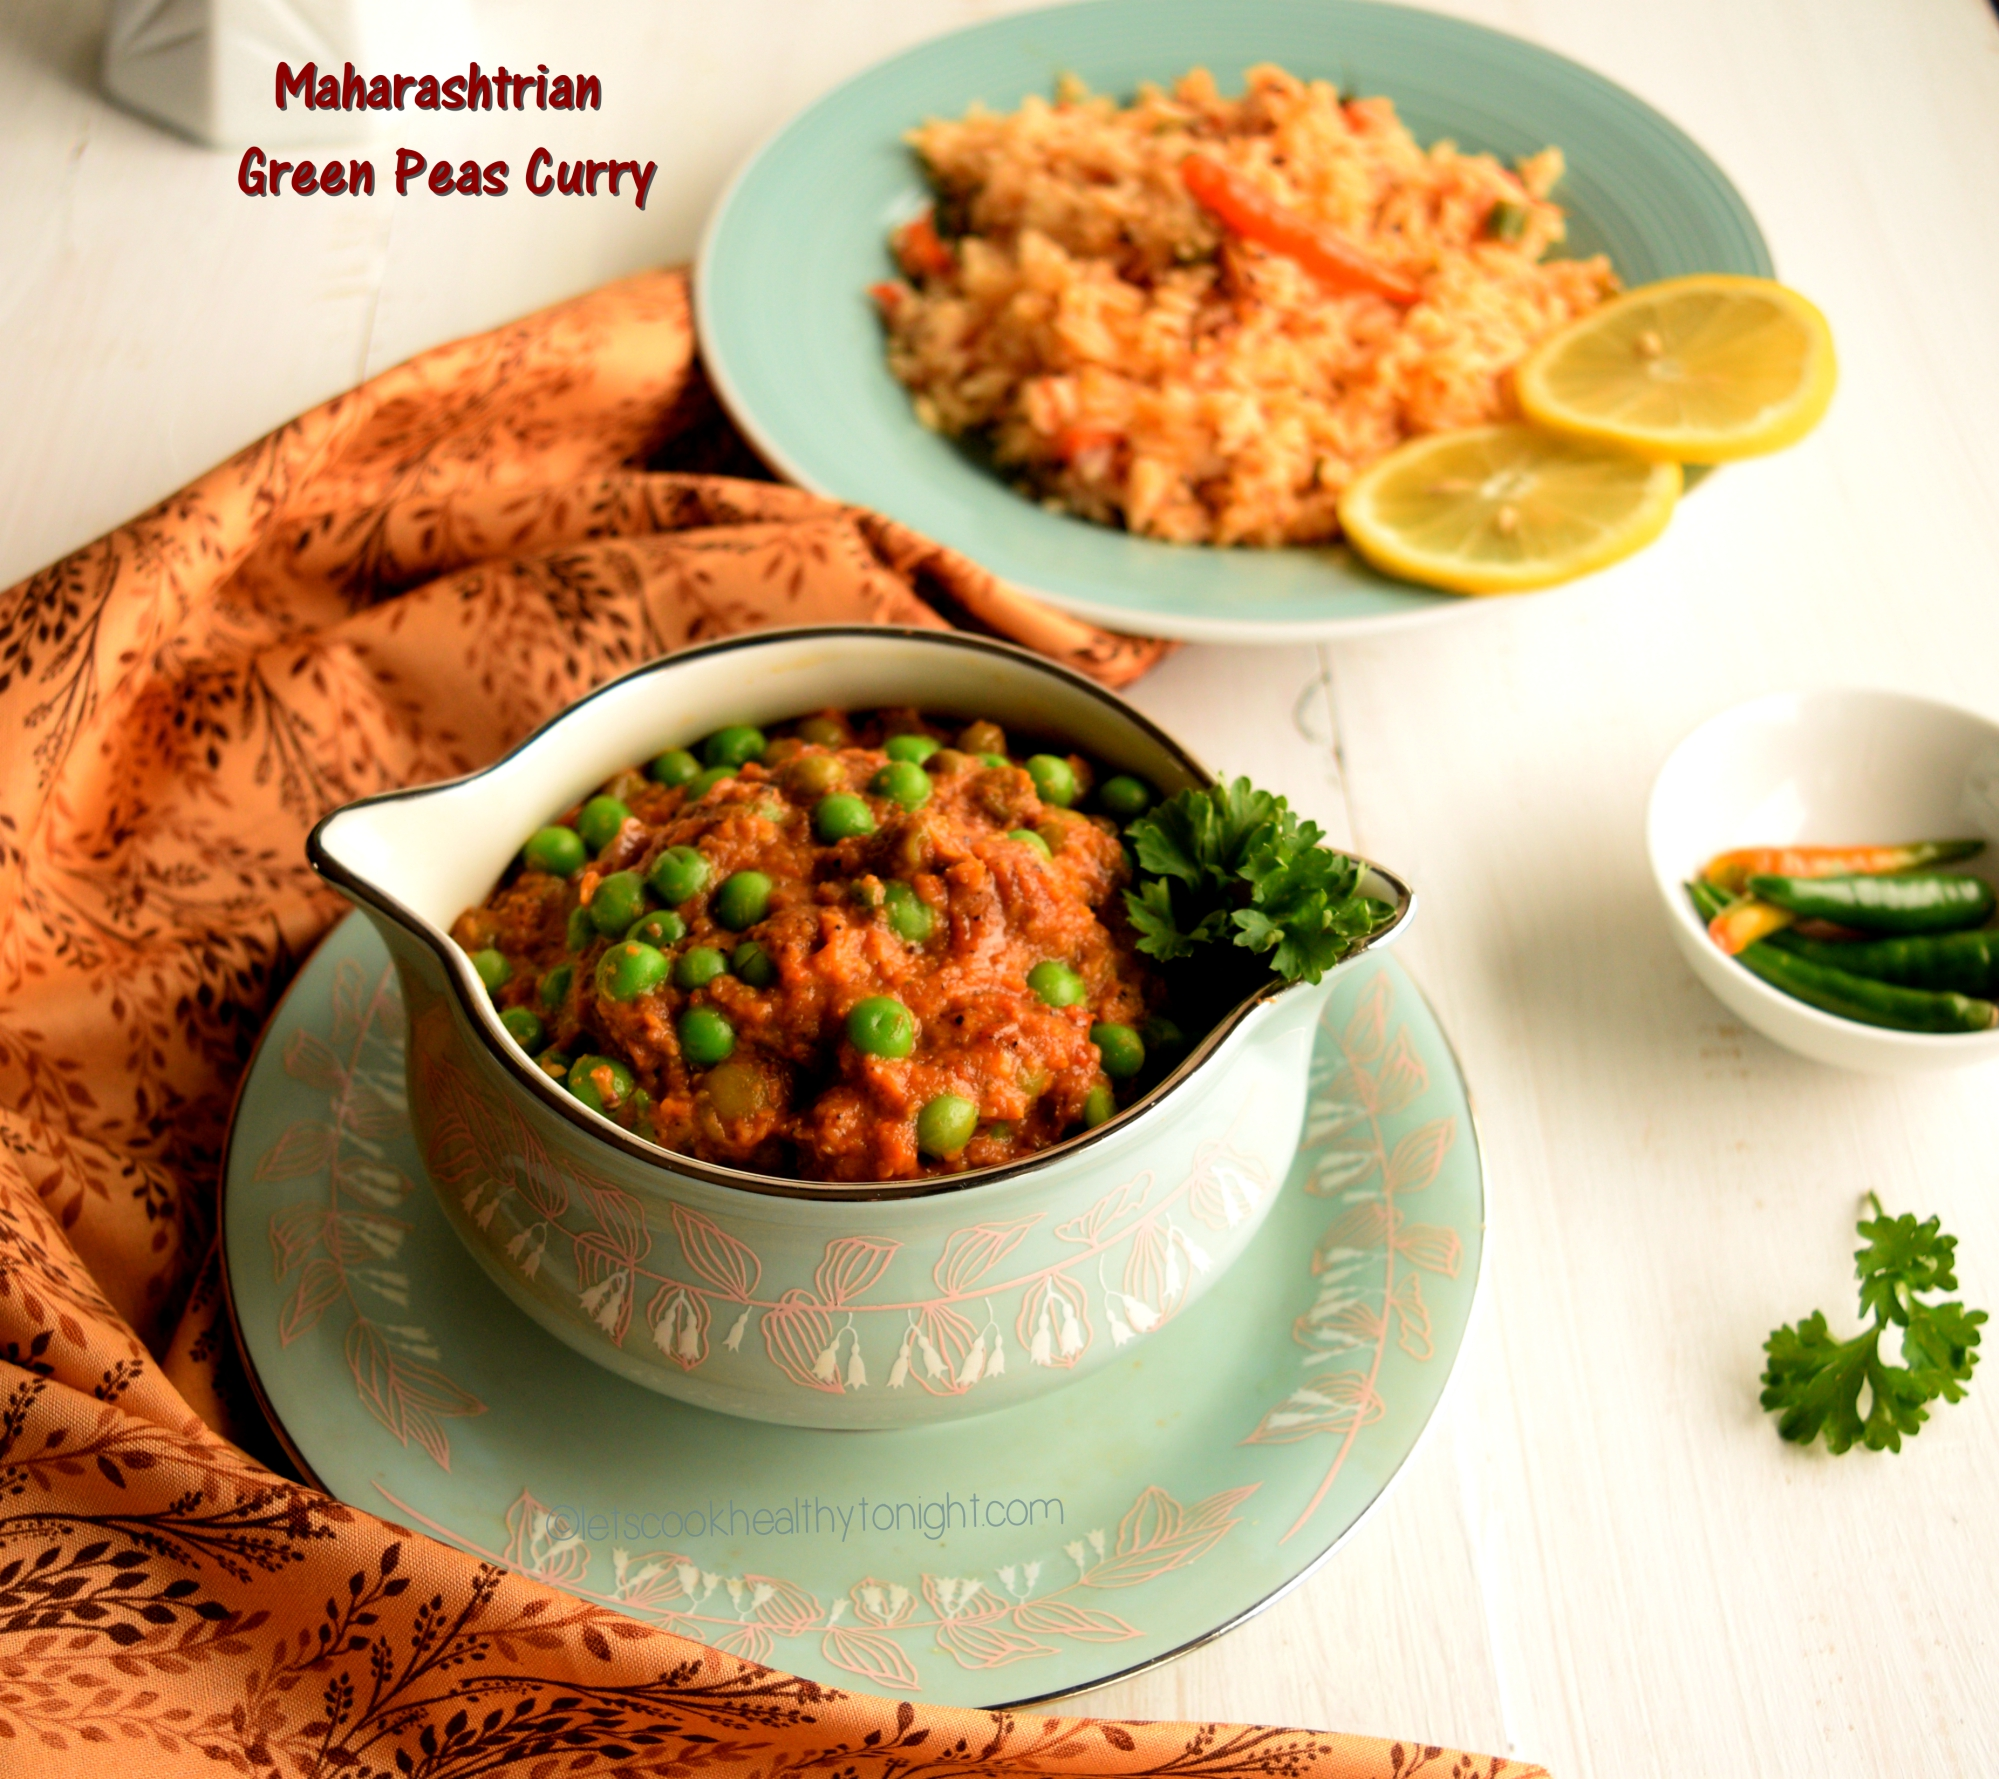 Maharashtrian green peas curry lets cook healthy tonight maharashtrian green peas curry or hirvya vatanyachi amti is one of the main course recipes in maharashtrian cuisine this is very simple and easy to prepare forumfinder Image collections